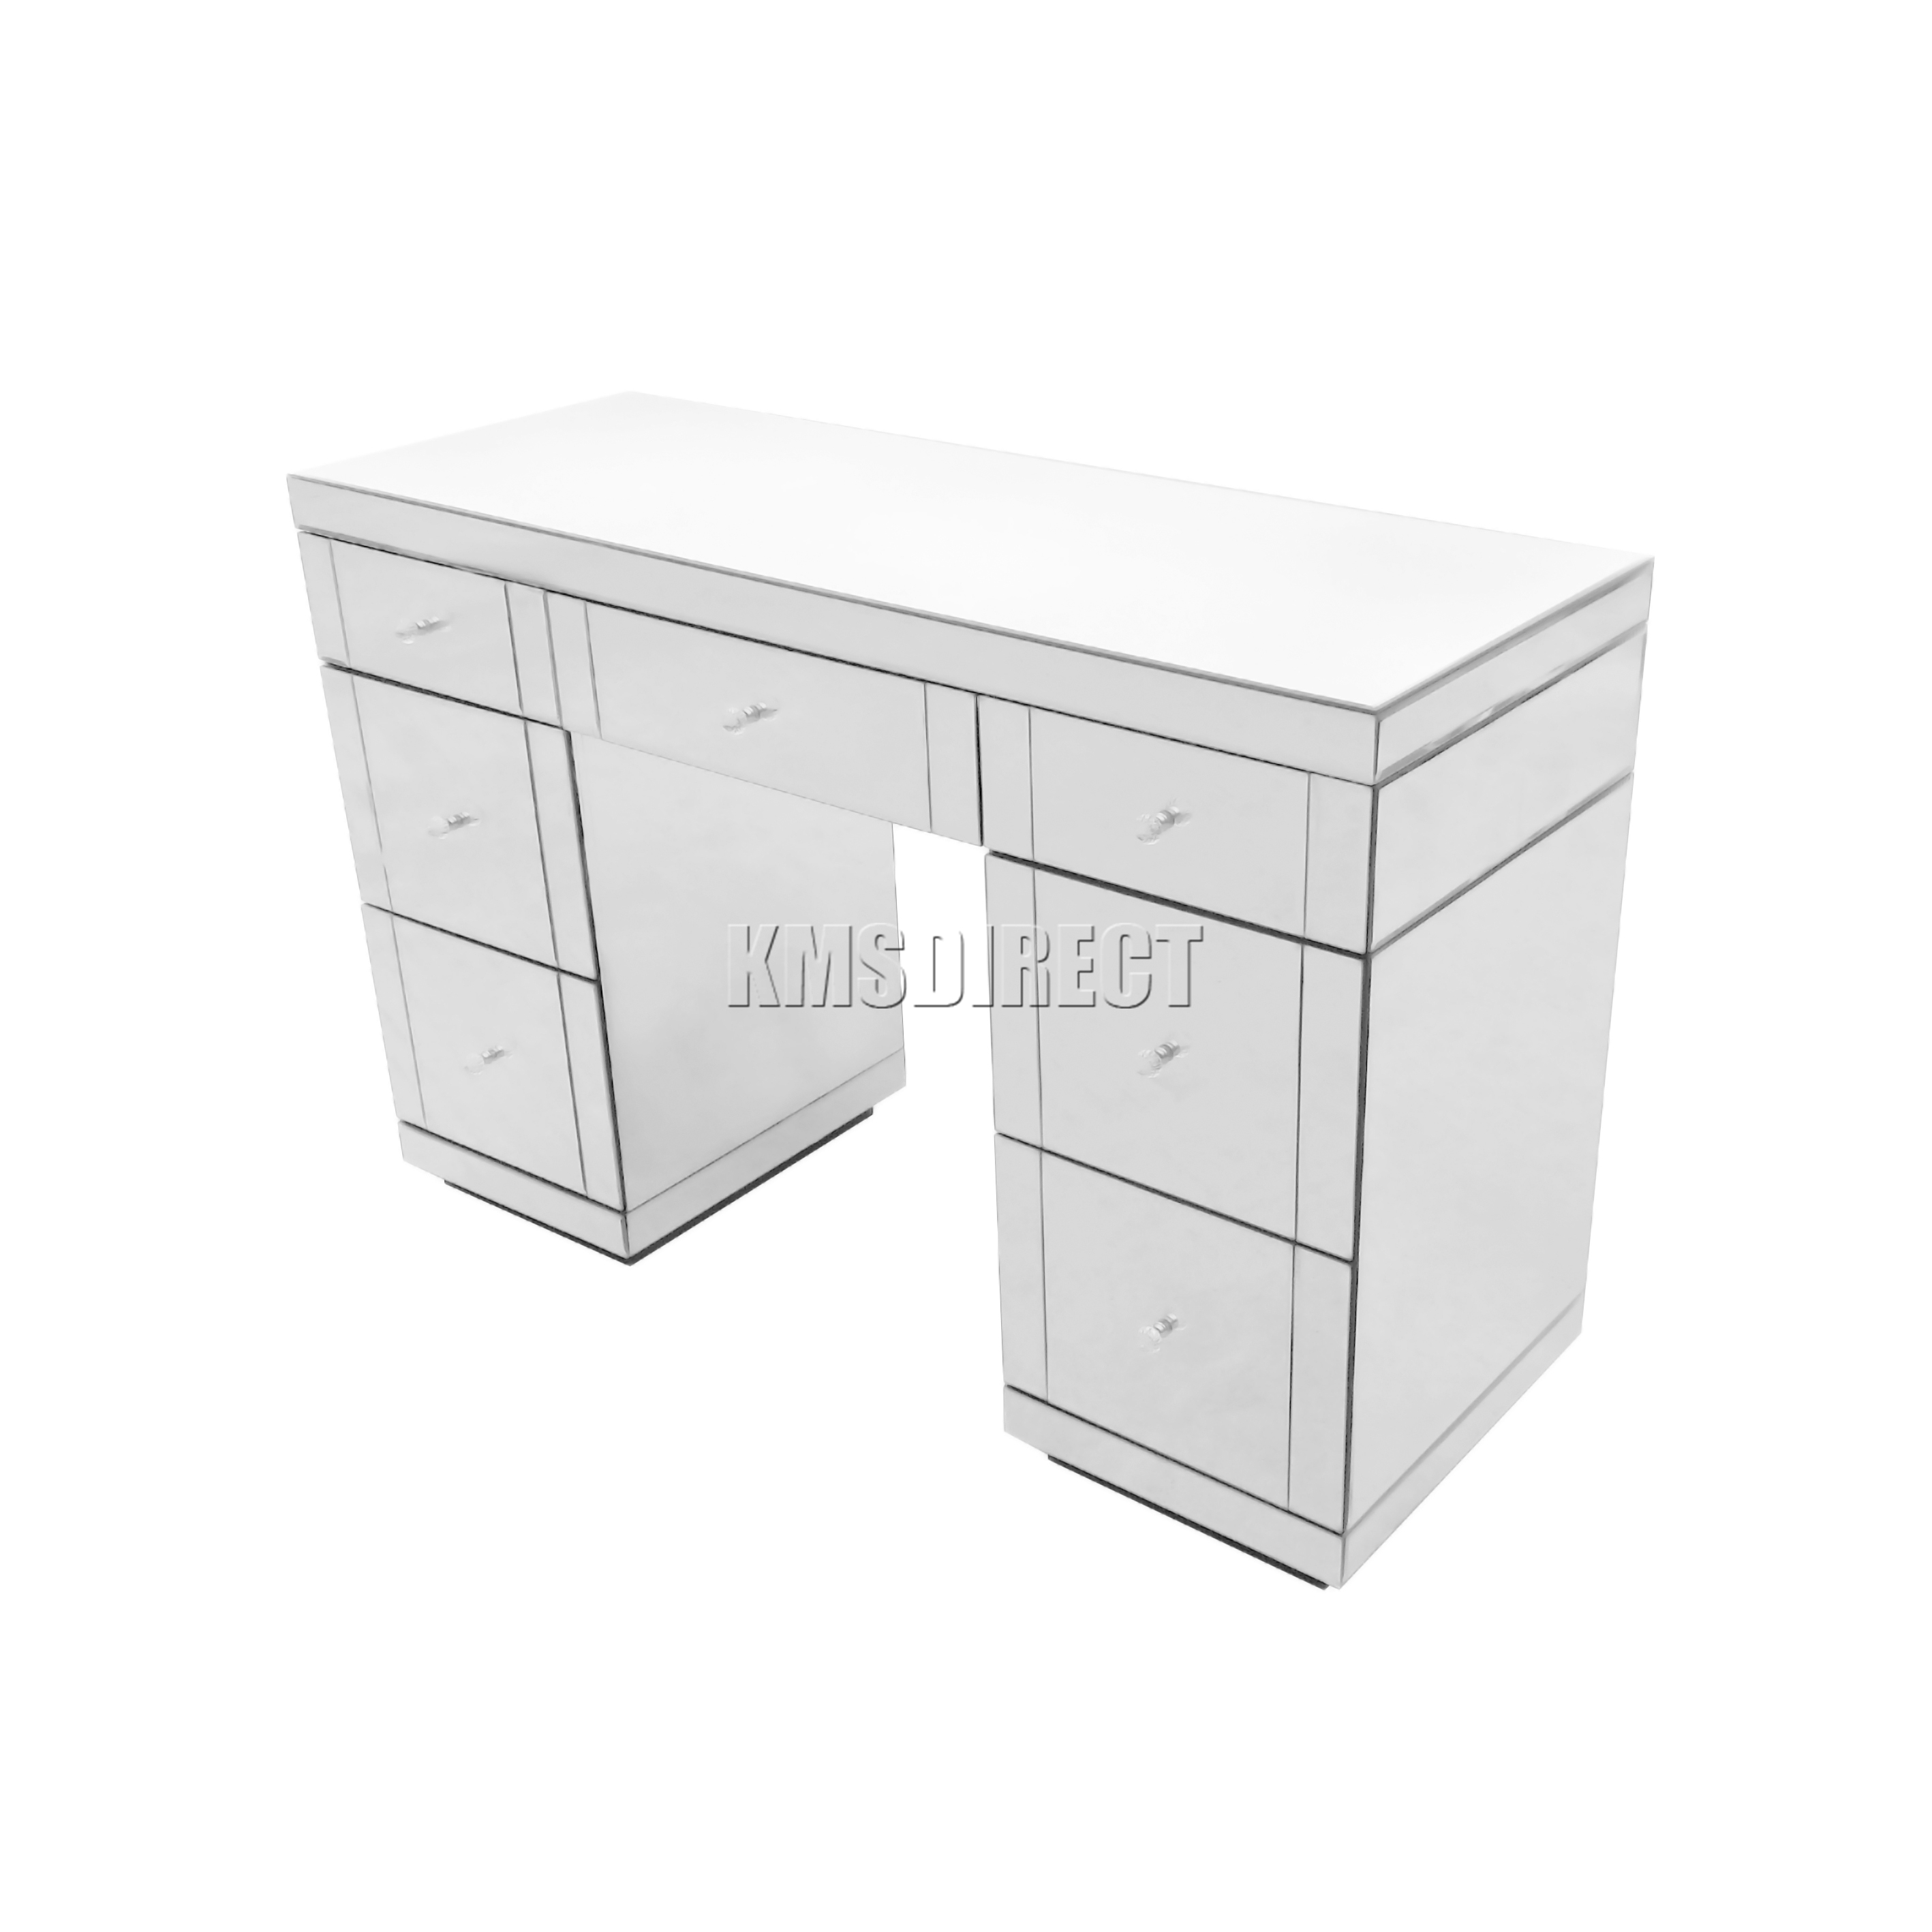 sparkle high com again teen drawer white stunning spirit with draw desk seattle products like gloss sells dressing your console space mirror table myshopify drawers